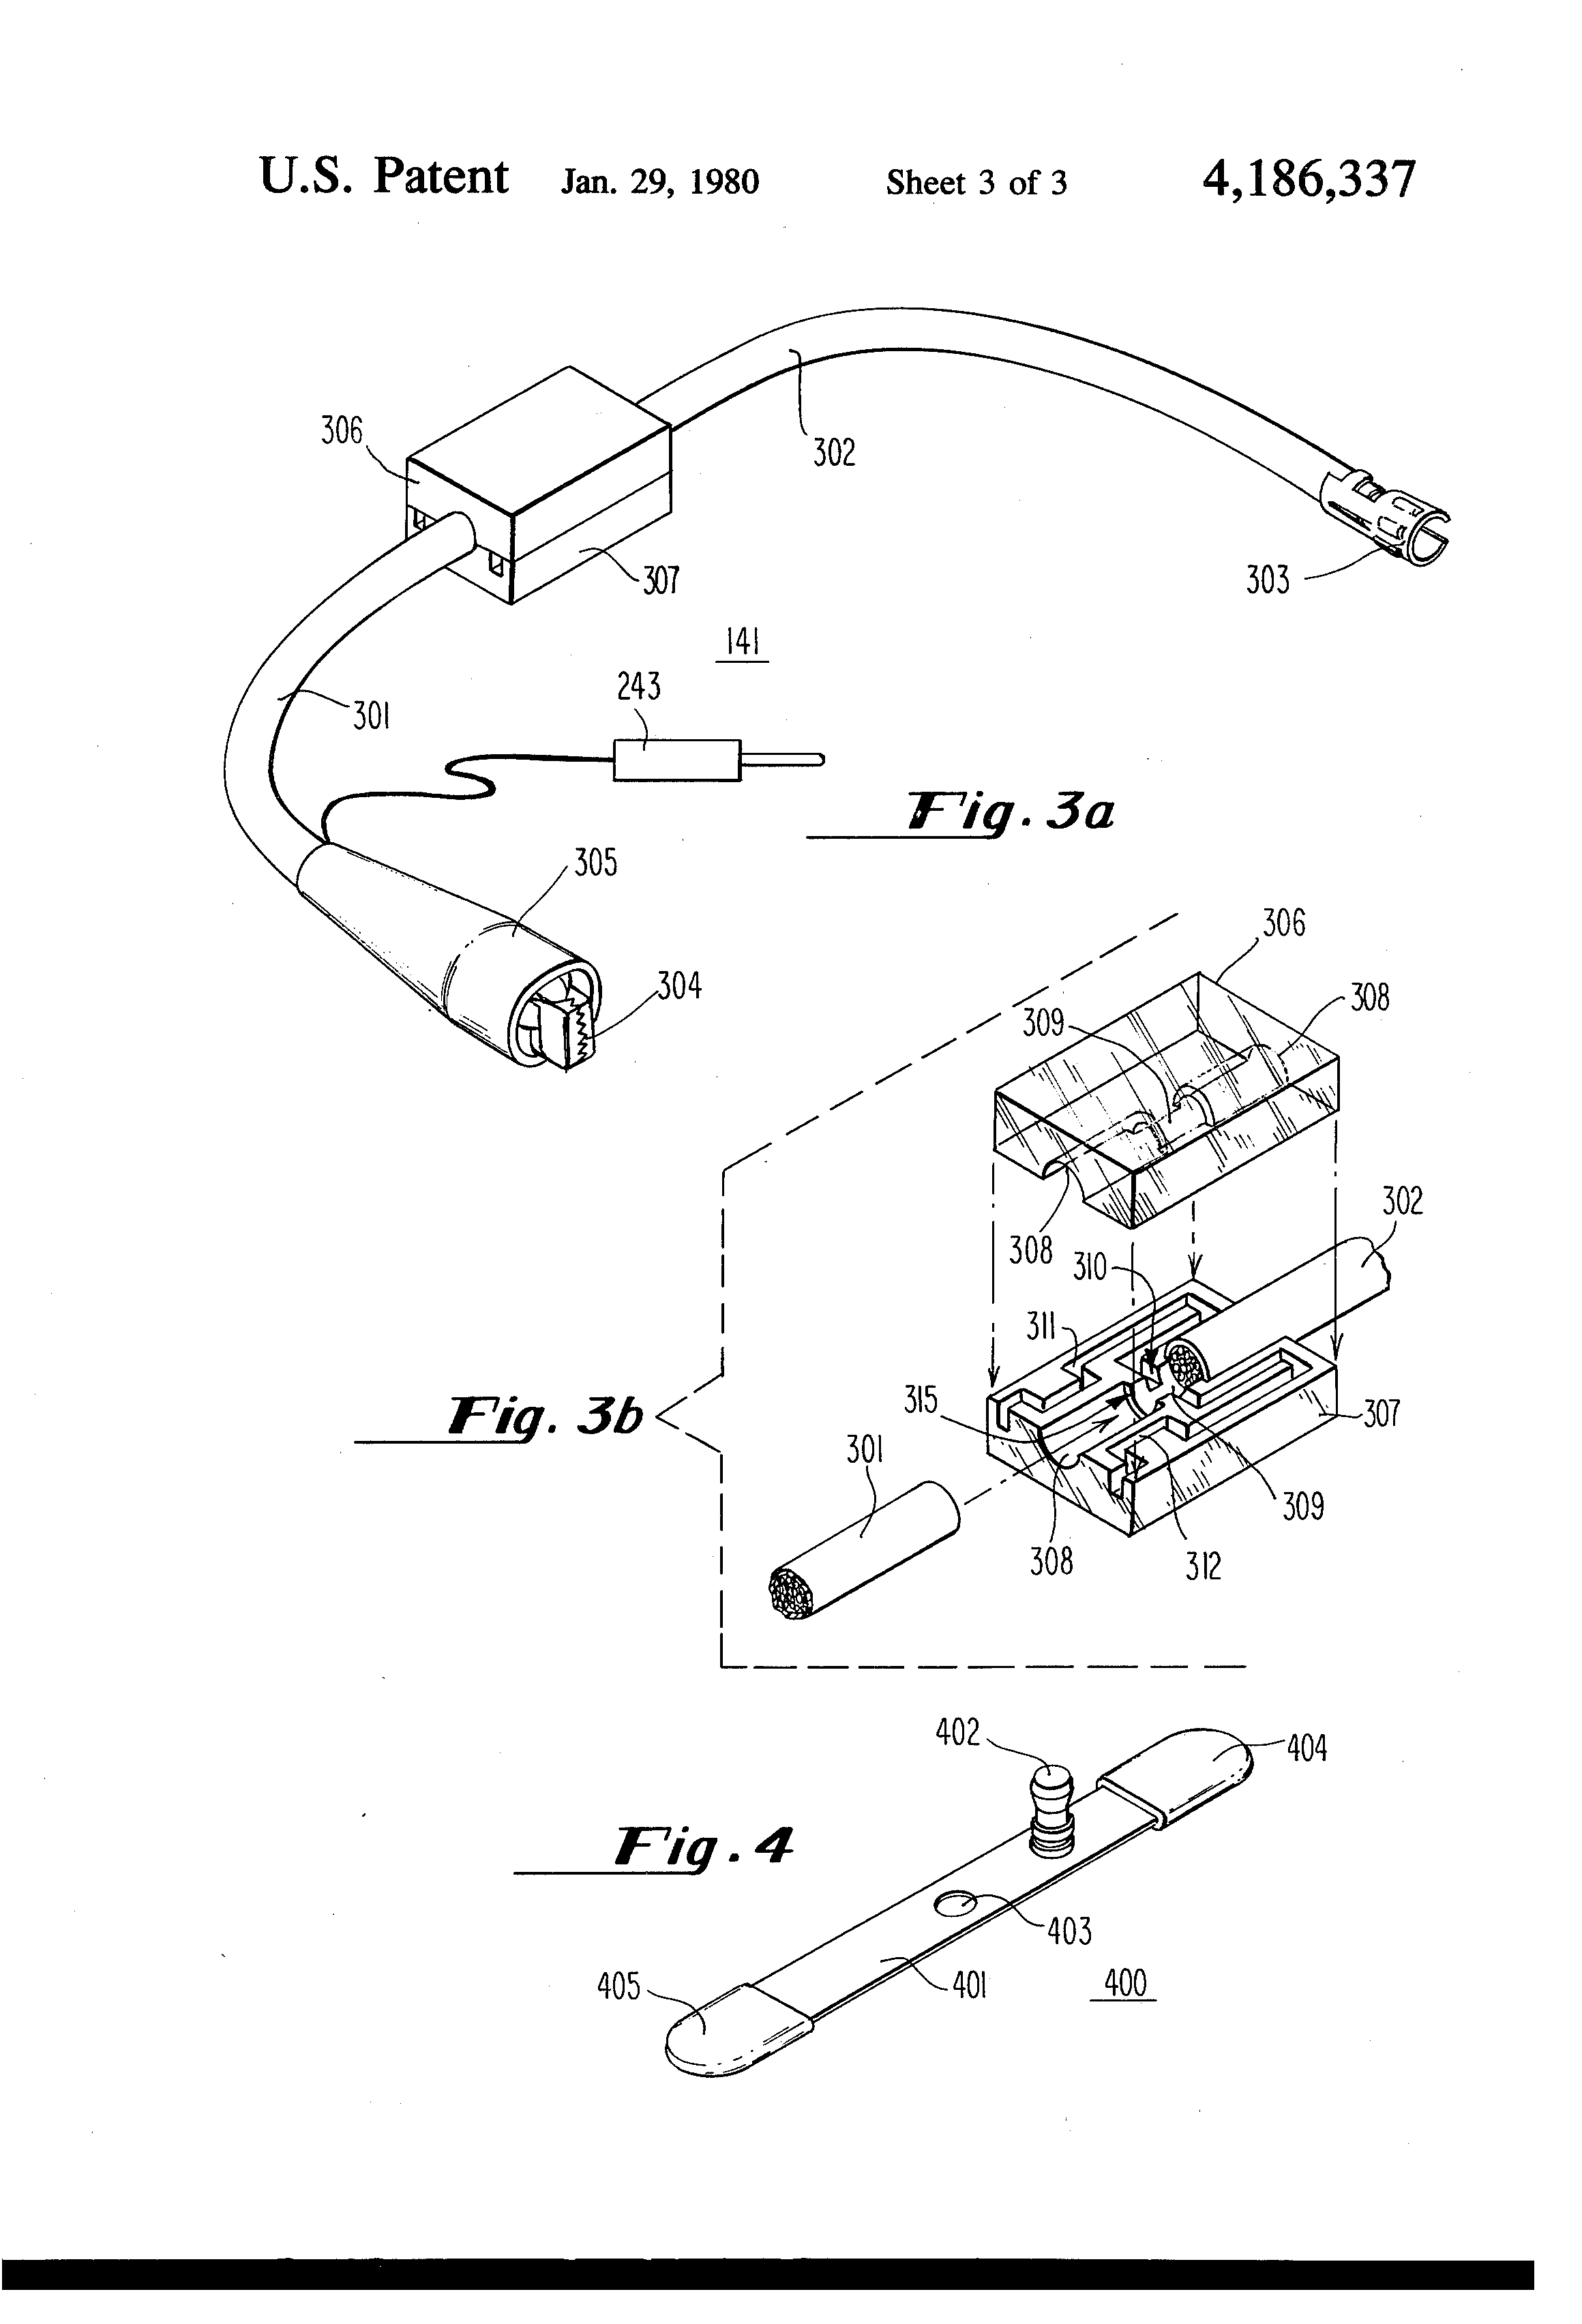 US4186337 furthermore S6d601 also Suzuki Vx 800 Transistorized Ignition System further 4x6n6 Nissan Datsun Maxima Se Hey Roy Corresponded likewise Honda C50m Electrical Wiring Diagram. on transistor ignition system coil